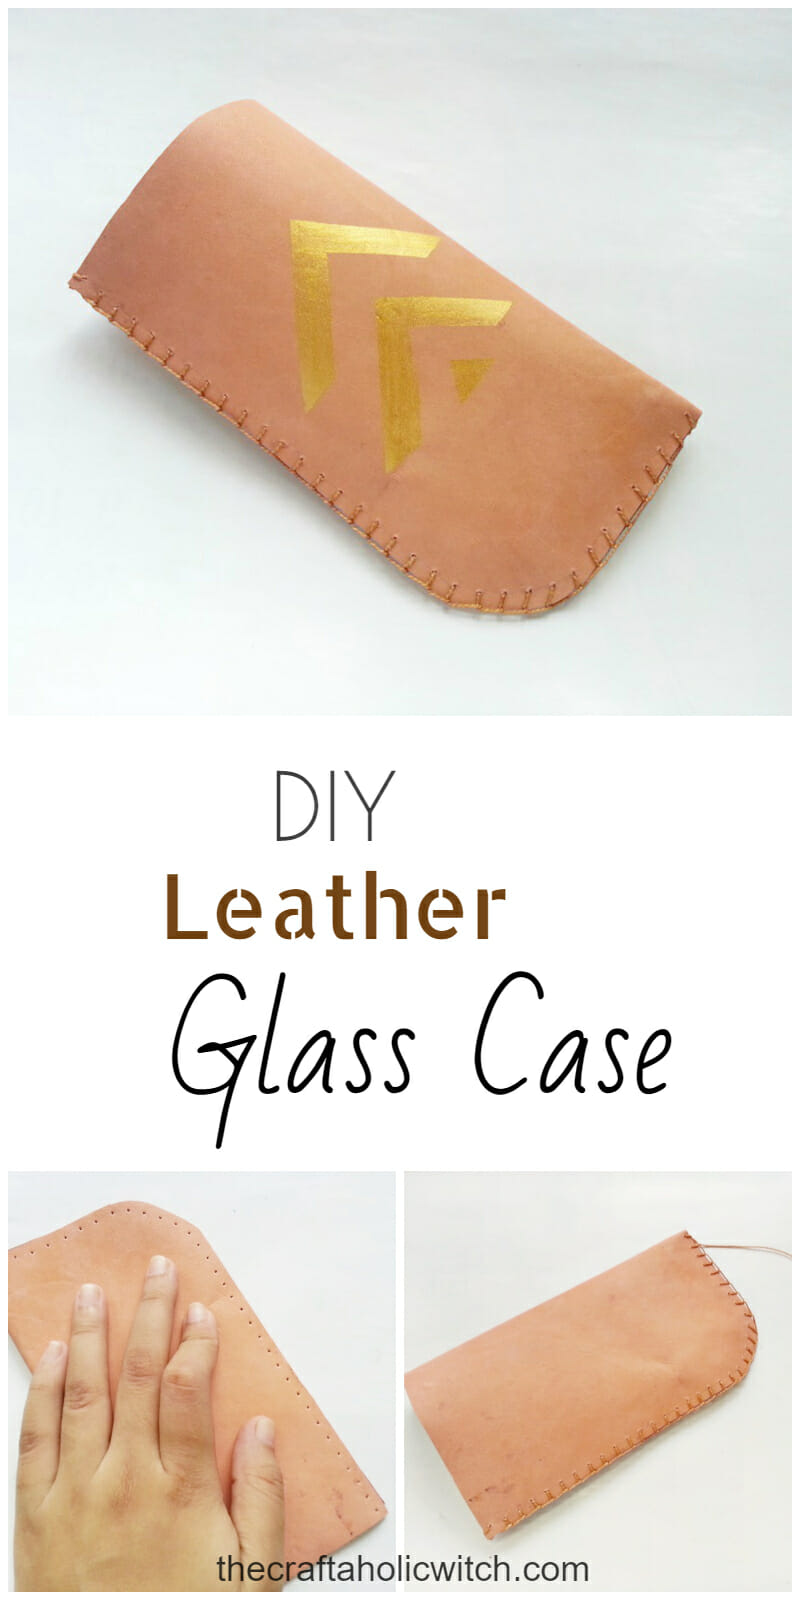 DIY Leather Glass Case